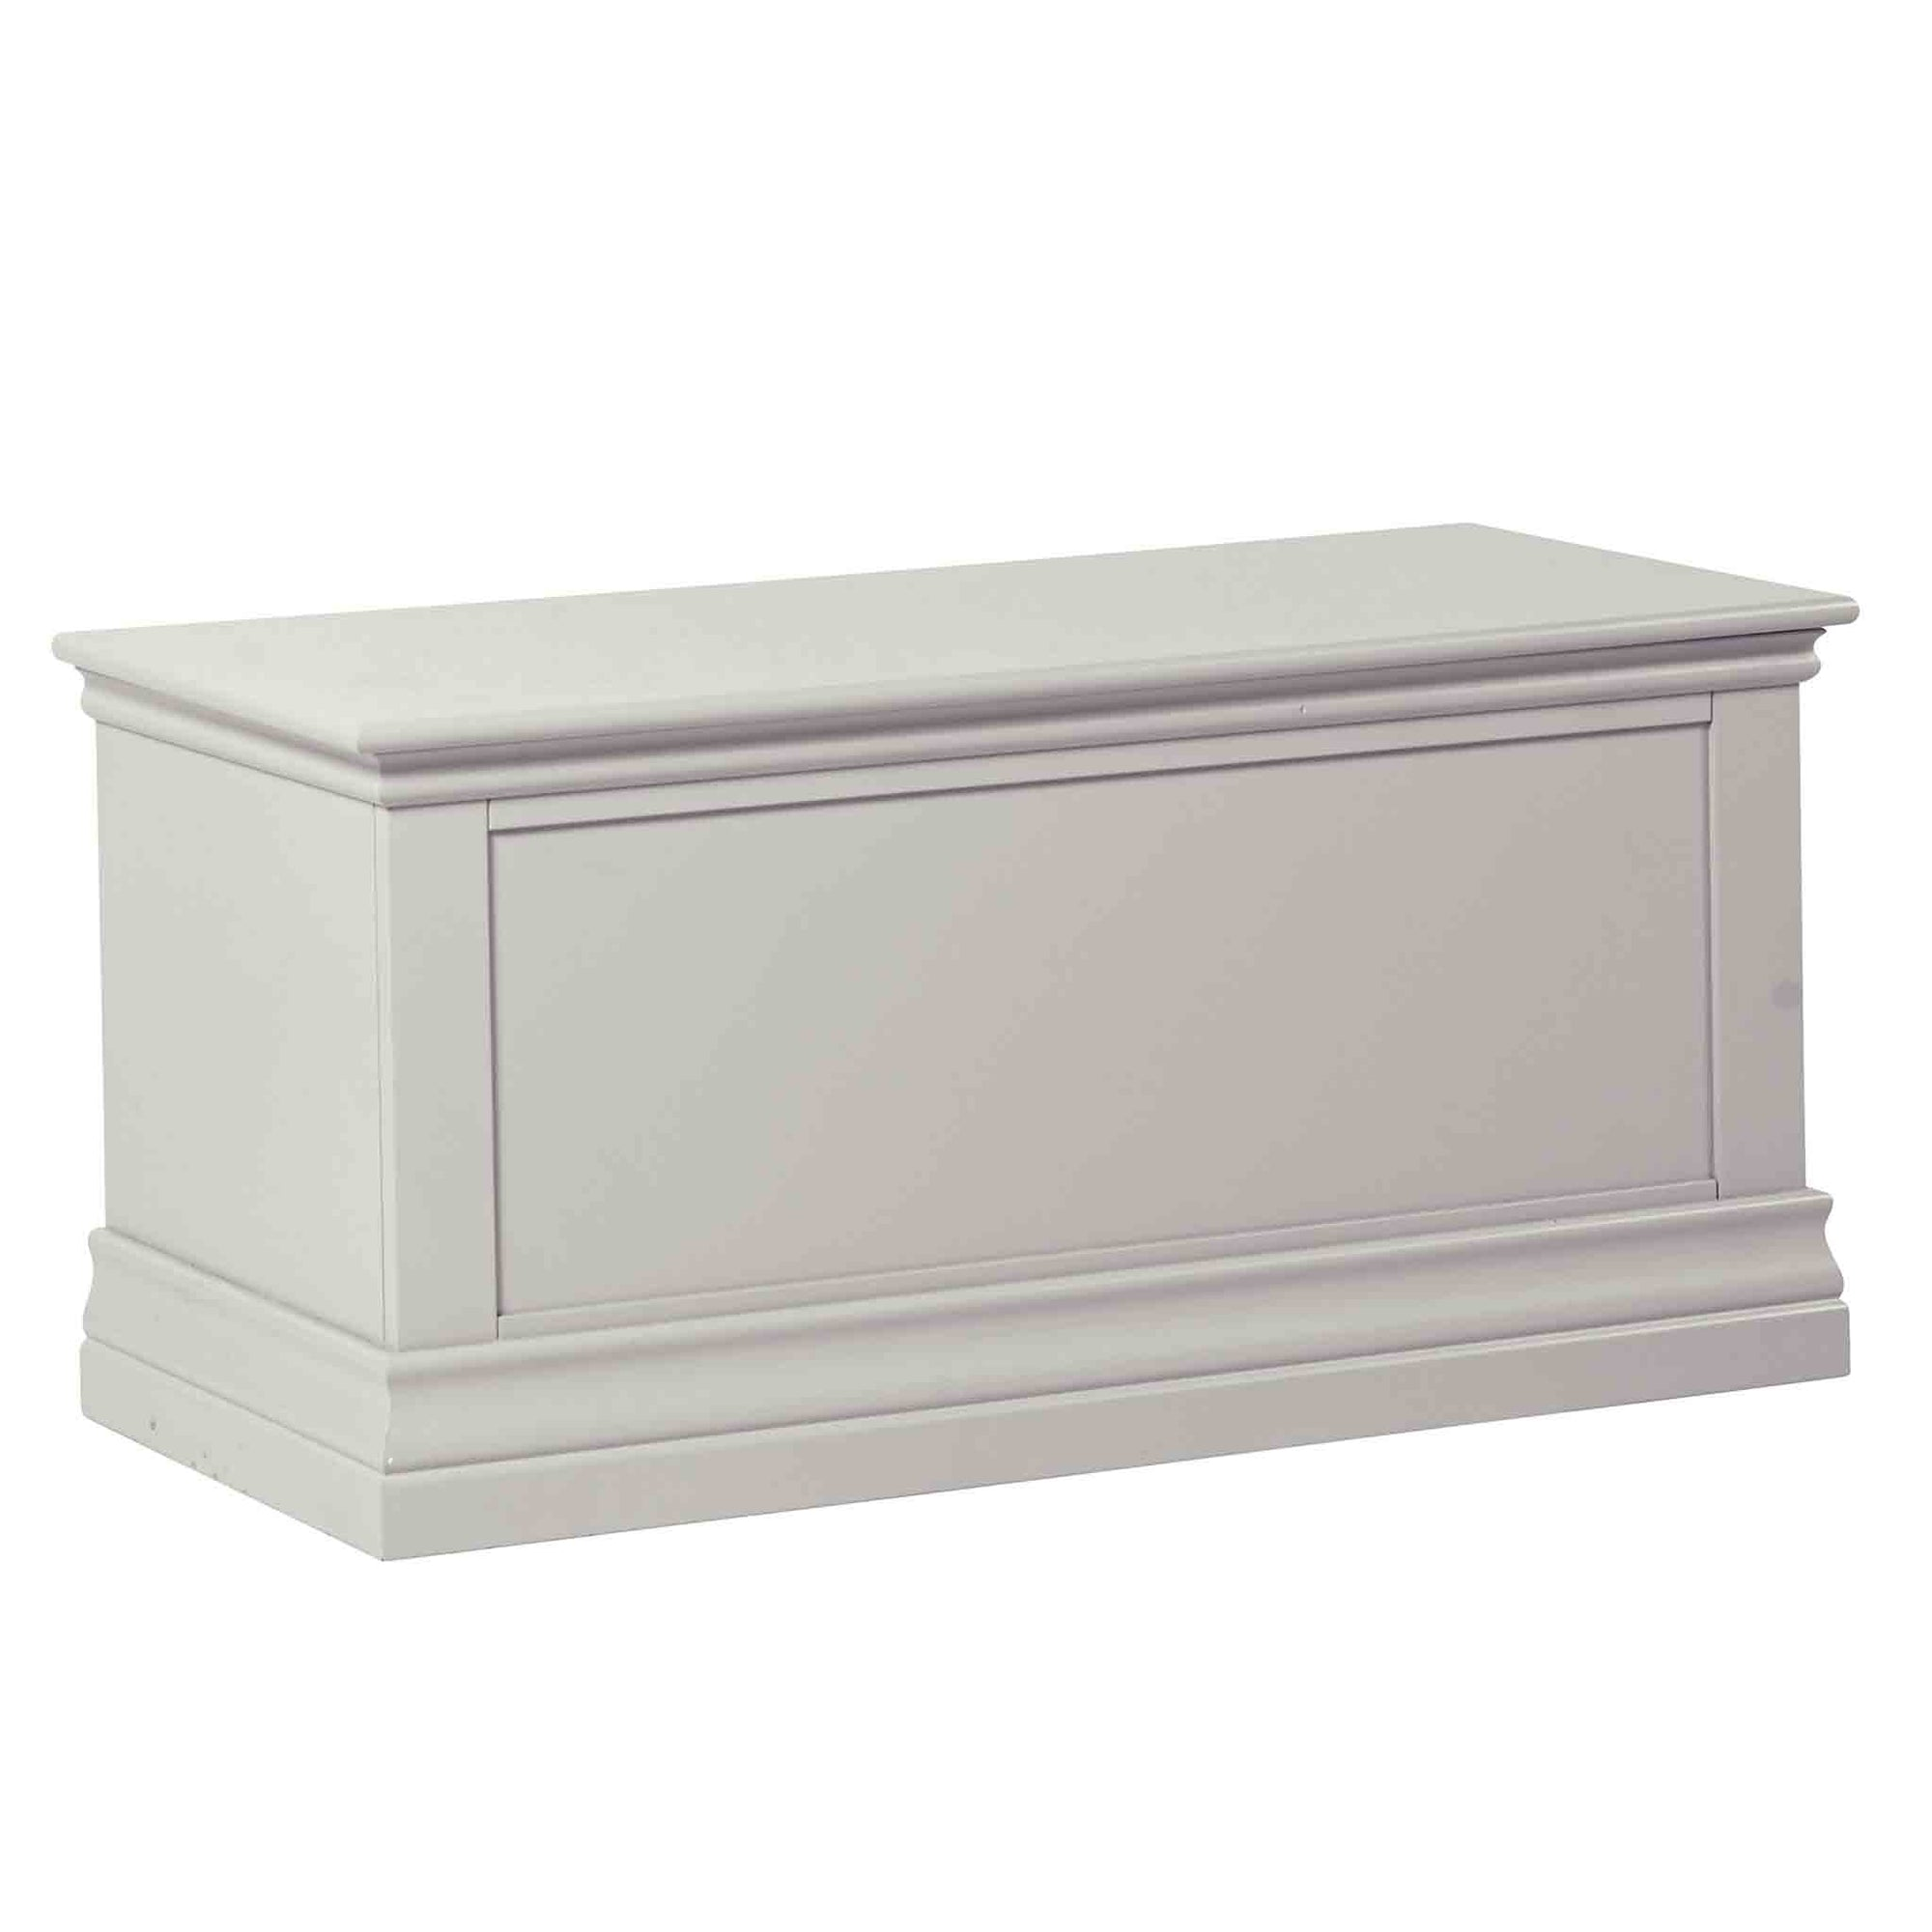 Melrose Cotton White Blanket Box from Roseland Furniture